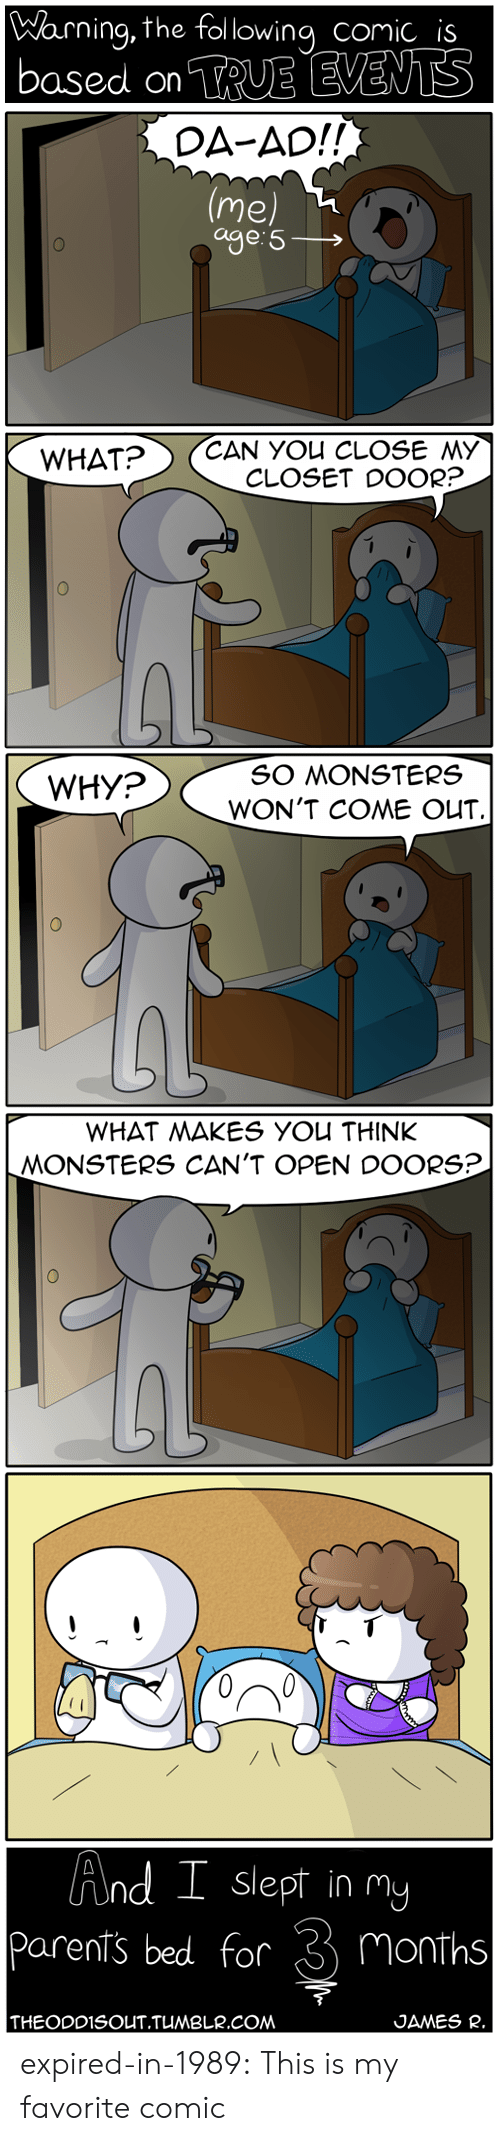 Cant Open: Warning, the fol lowing comic is  based on TRUE EVENTS  DA-AD!!  (Me)  age 5  CAN YOU CLOSE MY  CLOSET DOOR?  WHAT?   SO MONSTERS  WHY?  WON'T COME OUT  WHAT MAKES YOU THINK  MONSTERS CAN'T OPEN DOORS?   And I slept in mY  parents bed for 3 months  THEODDISOUT.TUMBLR.COM  JAMES R. expired-in-1989: This is my favorite comic